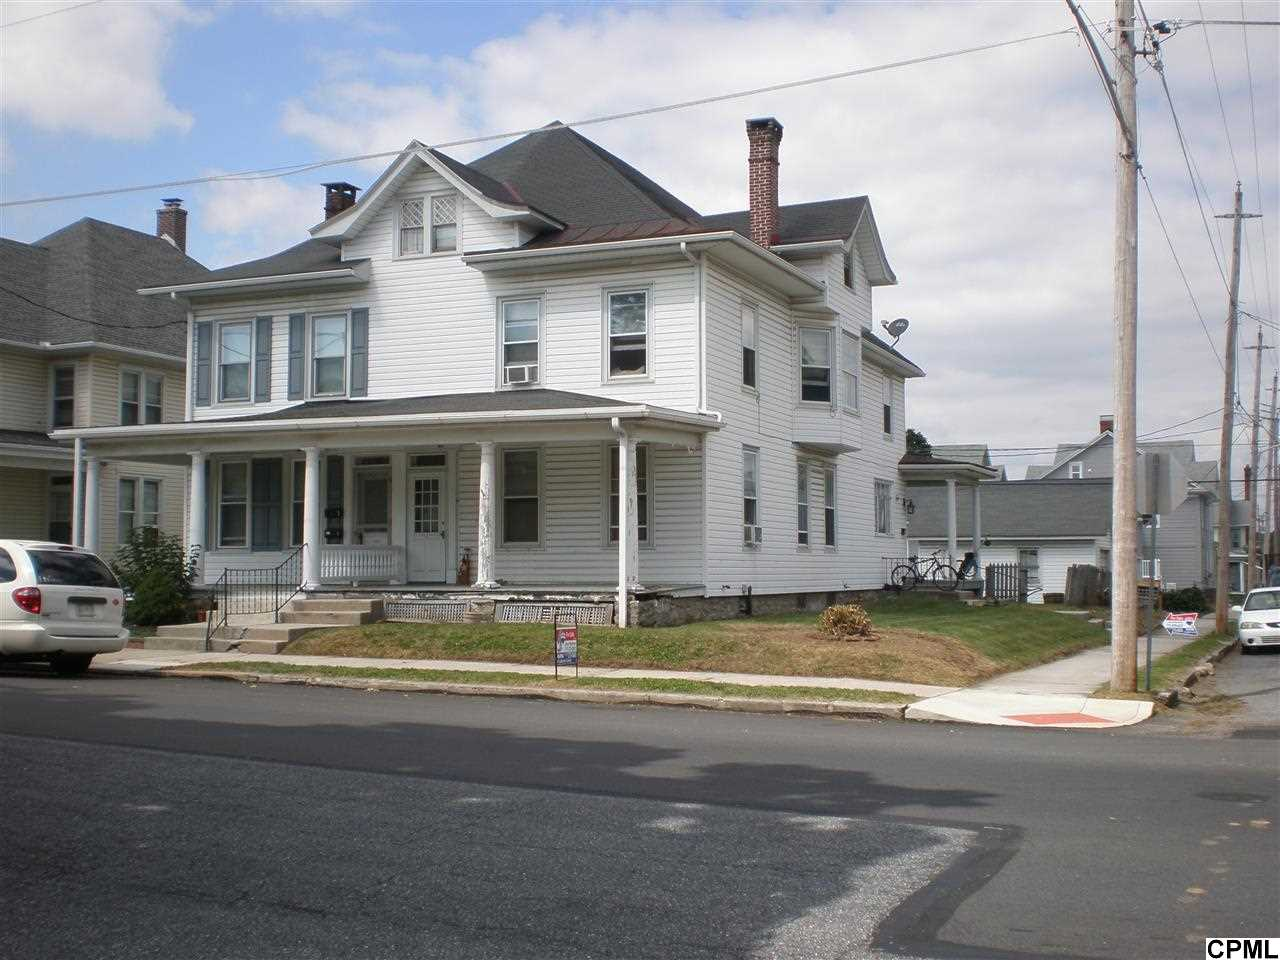 135 E Maple St, Palmyra, PA 17078